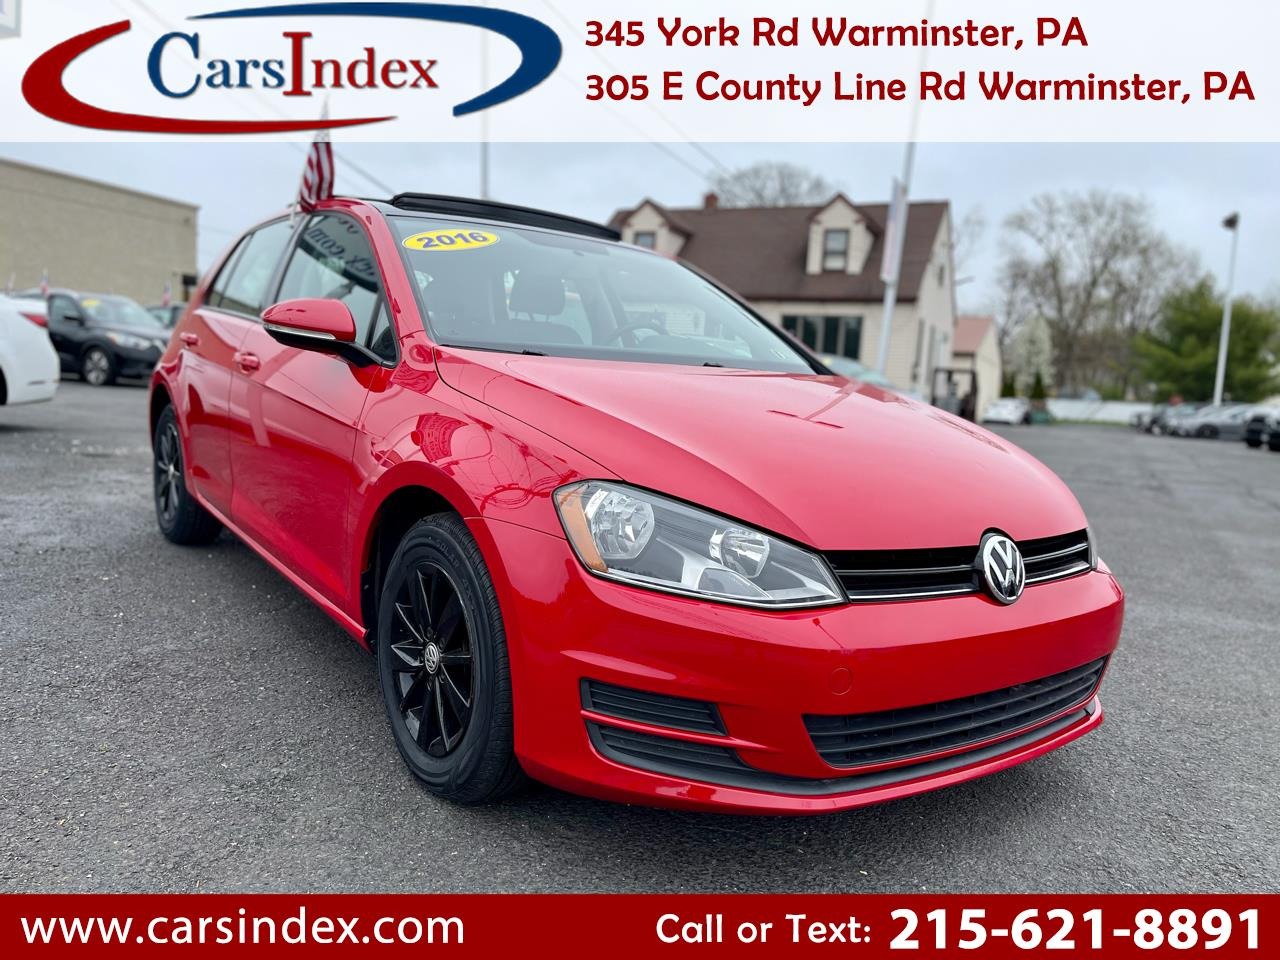 Used Volkswagen Golf Warminster Pa